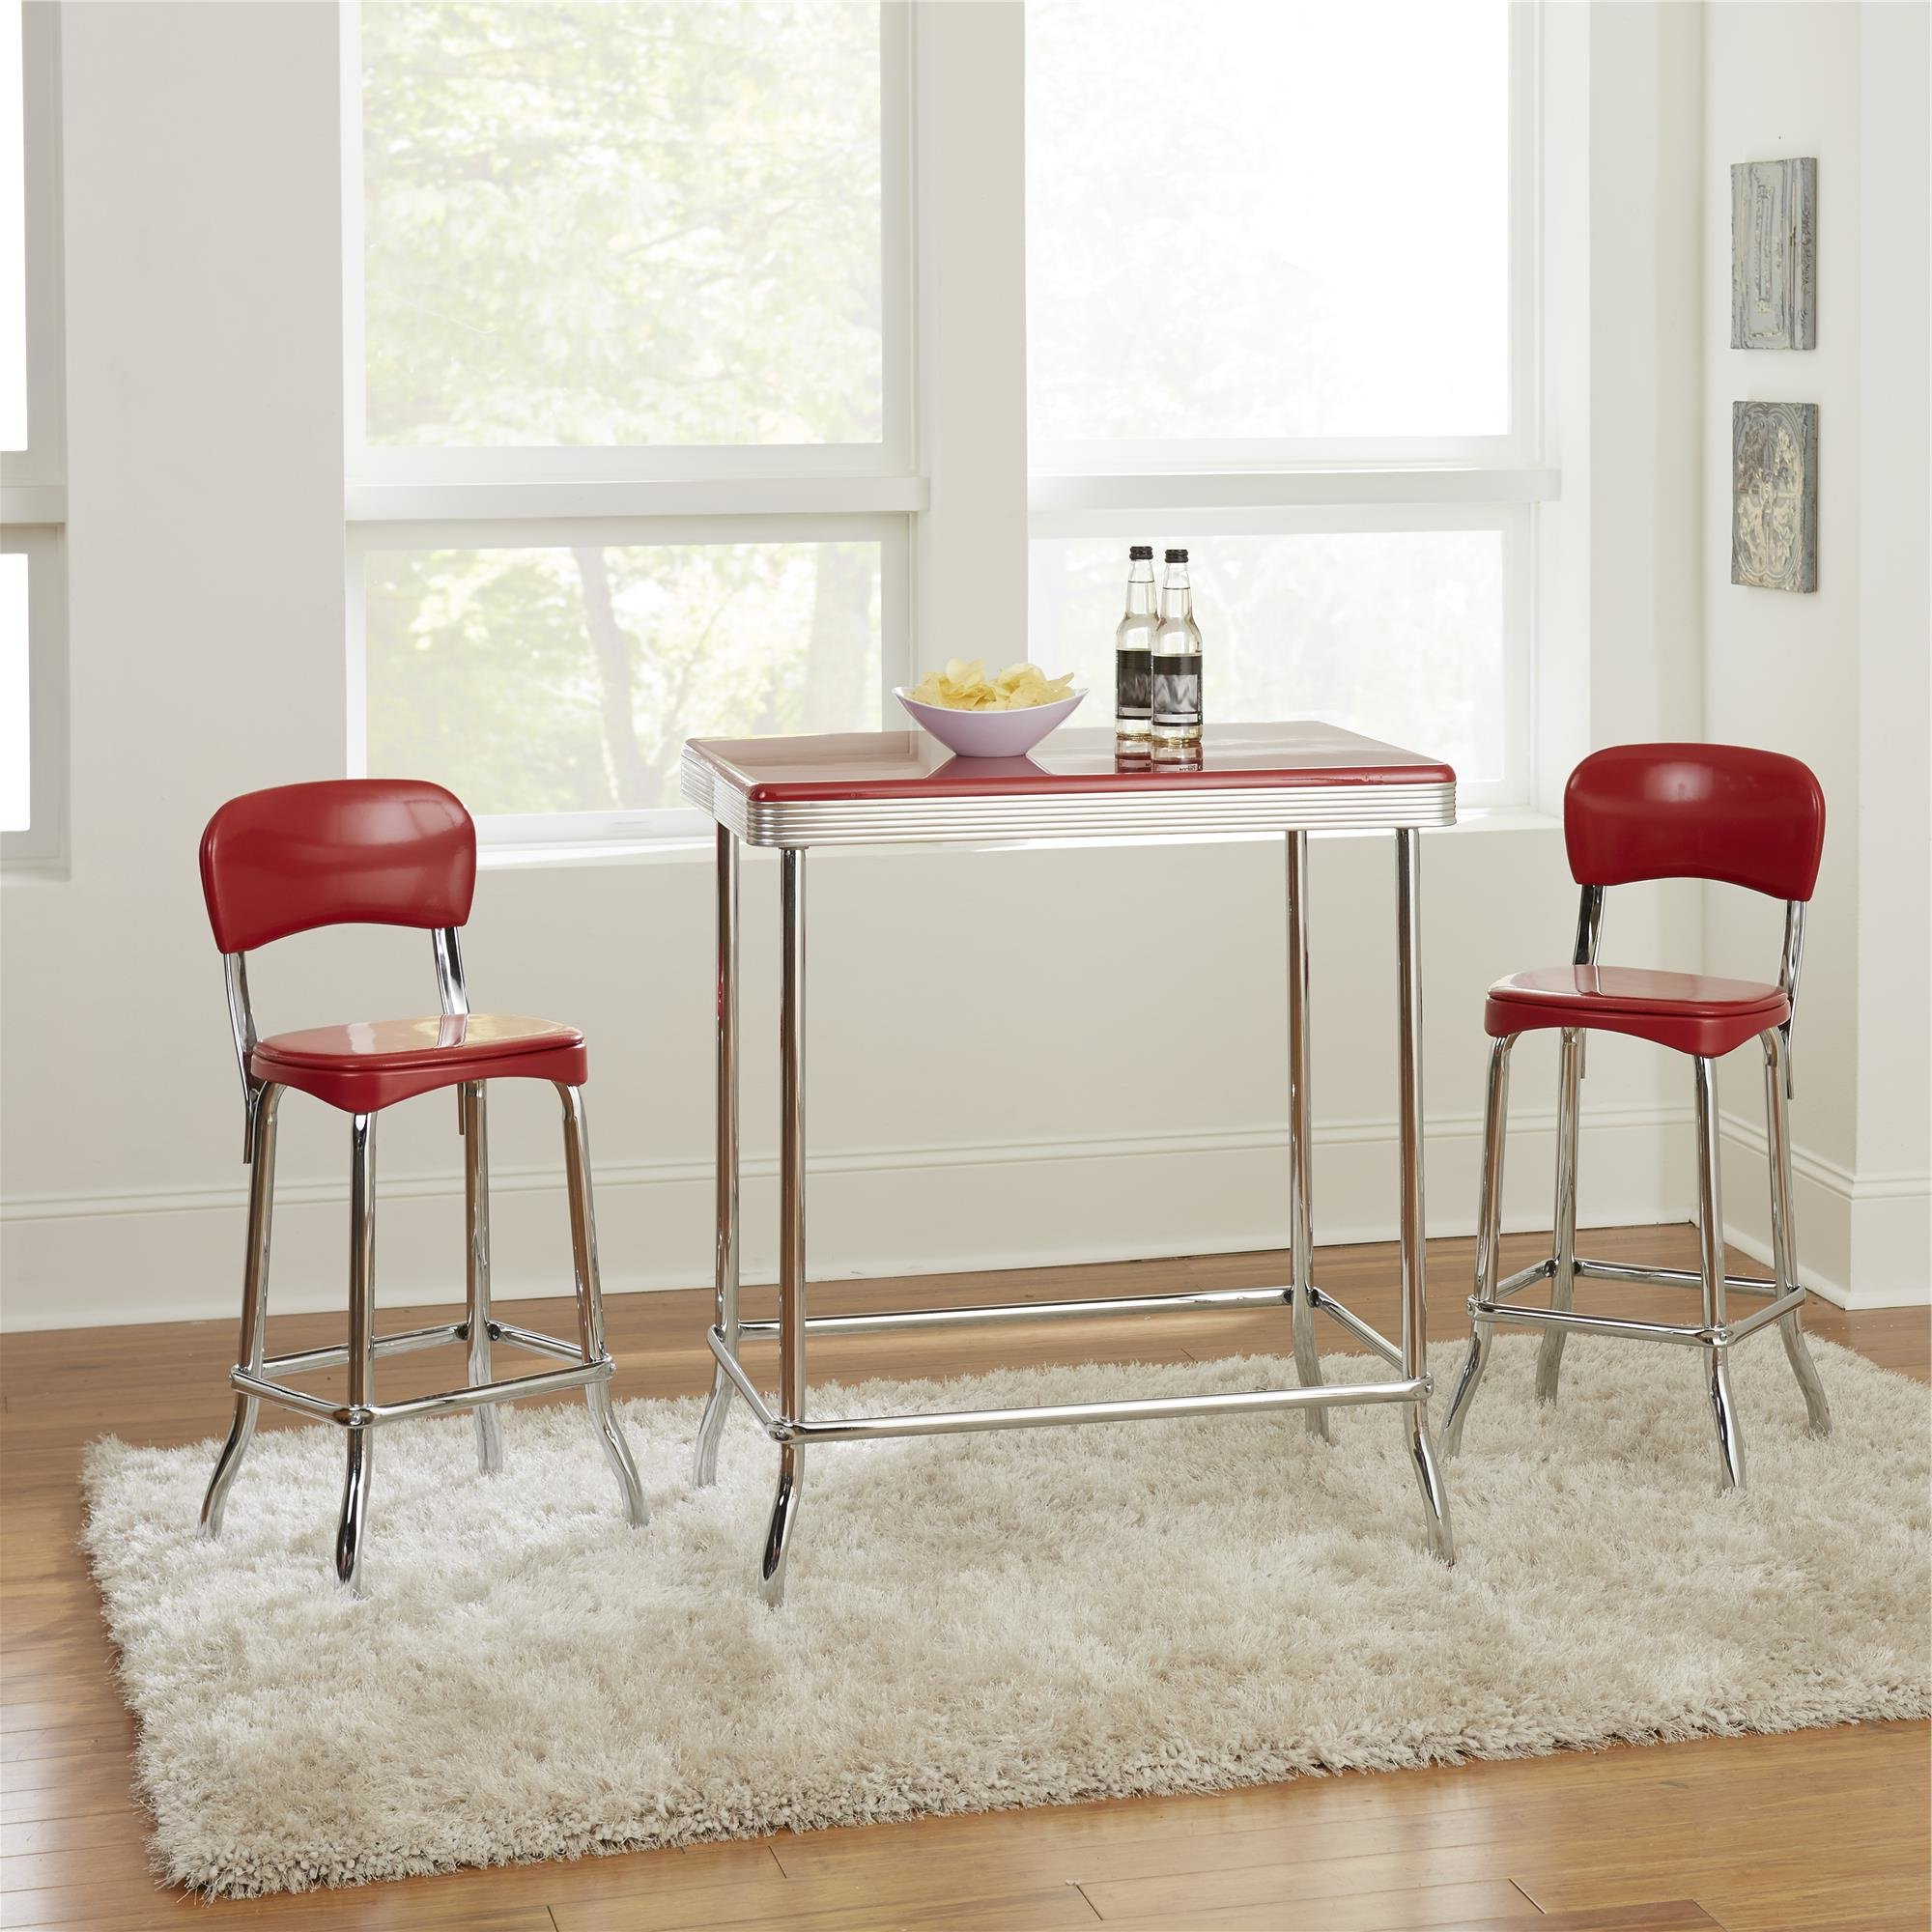 Bate Red Retro 3 Piece Dining Set In Fashionable Smyrna 3 Piece Dining Sets (View 12 of 20)